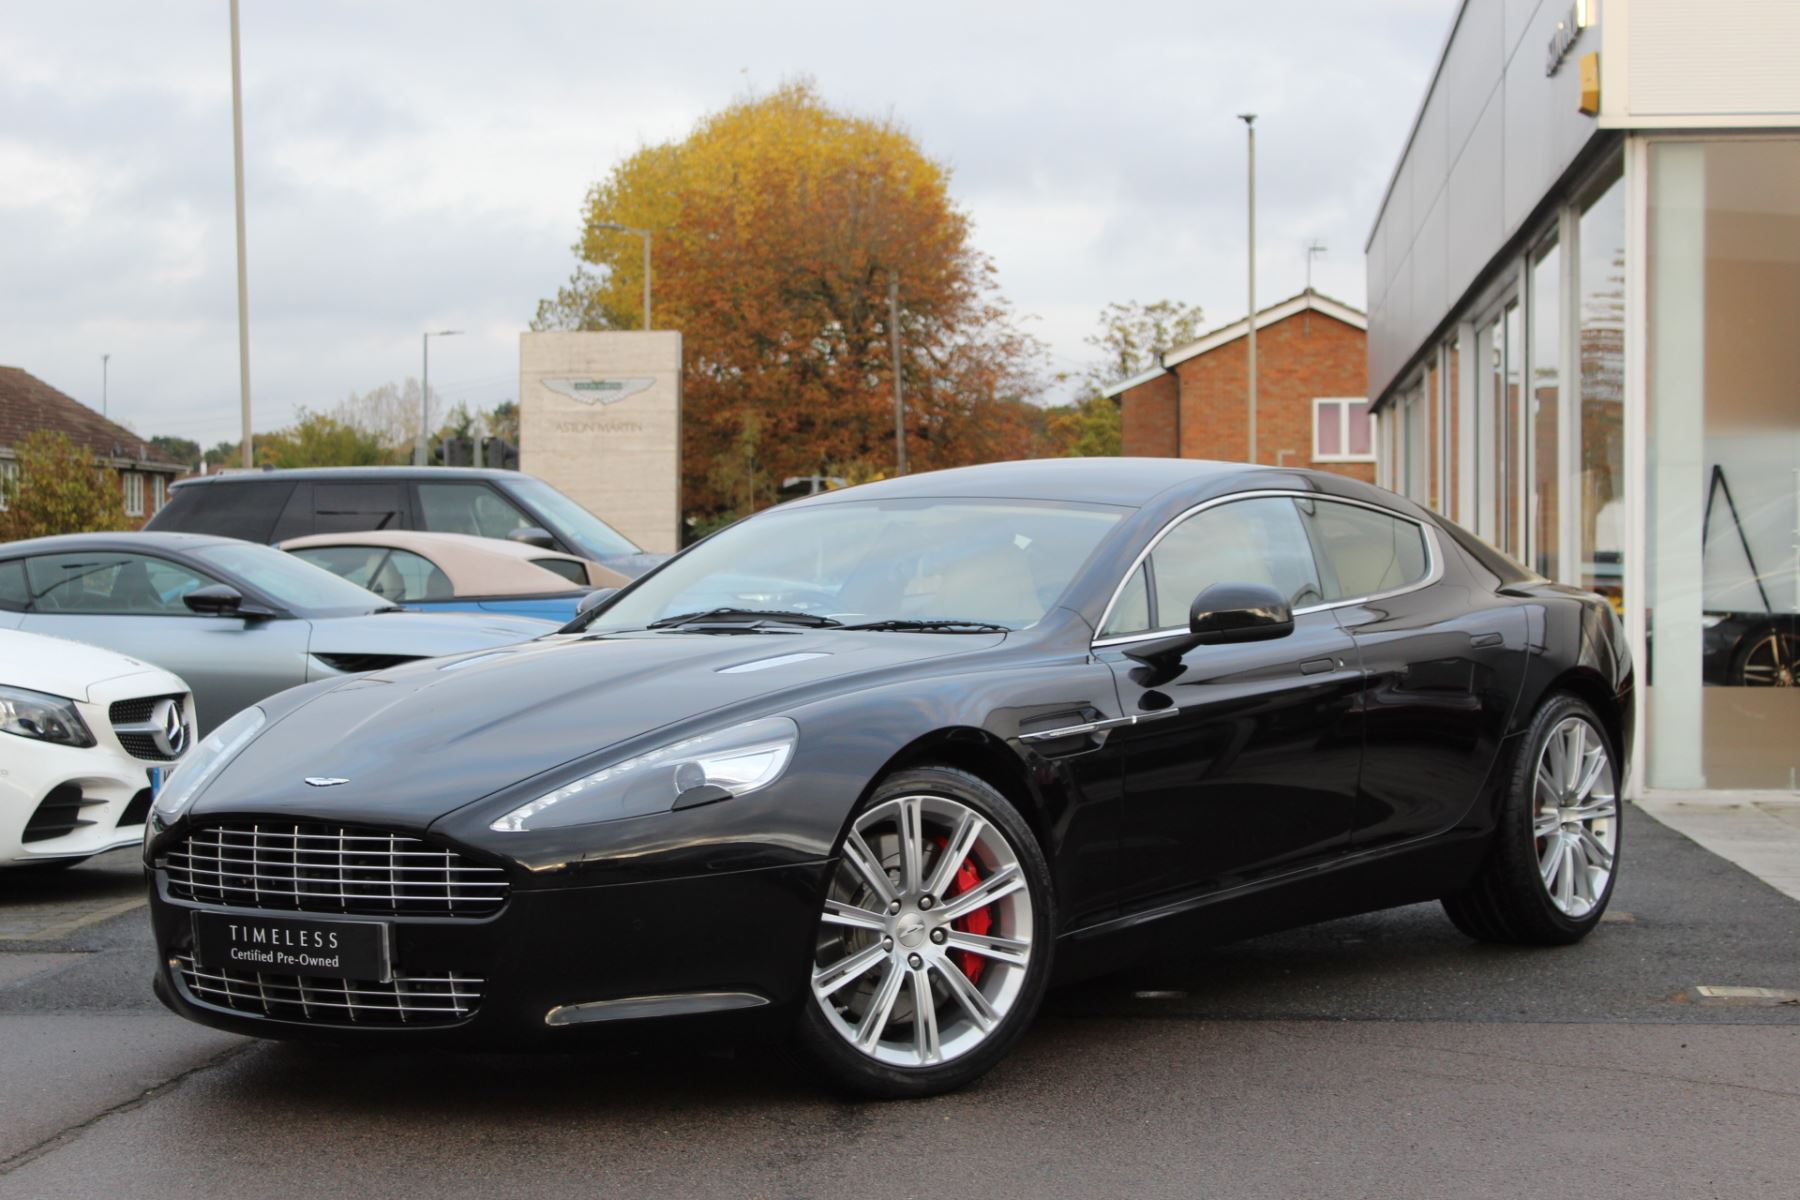 Aston Martin Rapide V12 4dr Touchtronic 5.9 Automatic 5 door Saloon (2011) image